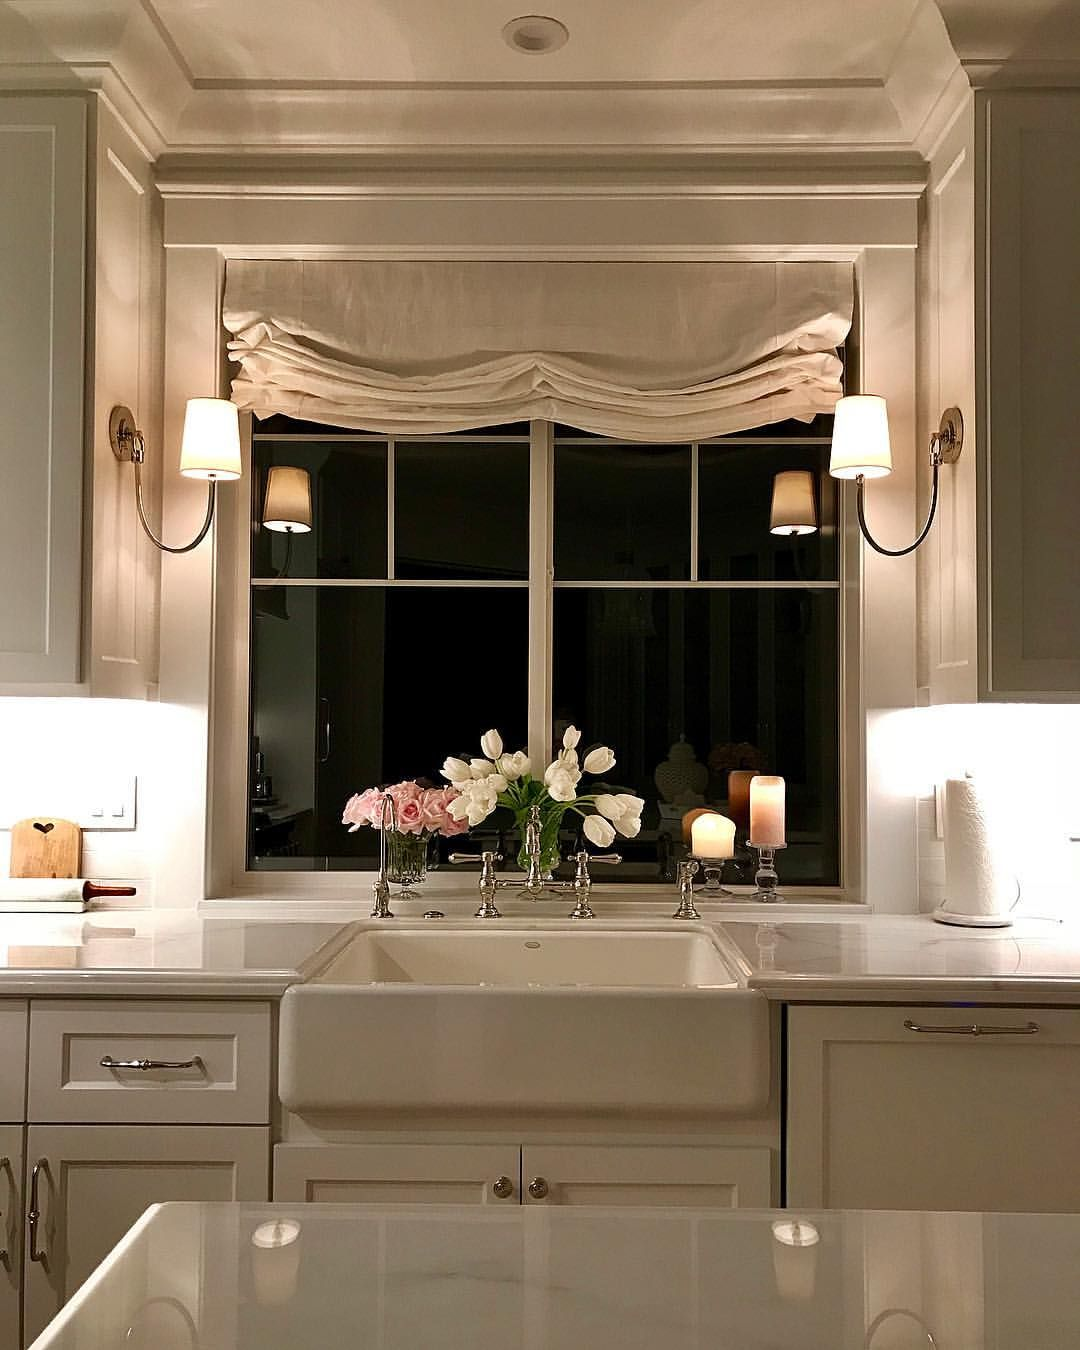 Kitchen Cabinet Curtains: Home Decor, Home Remodeling, Home Kitchens